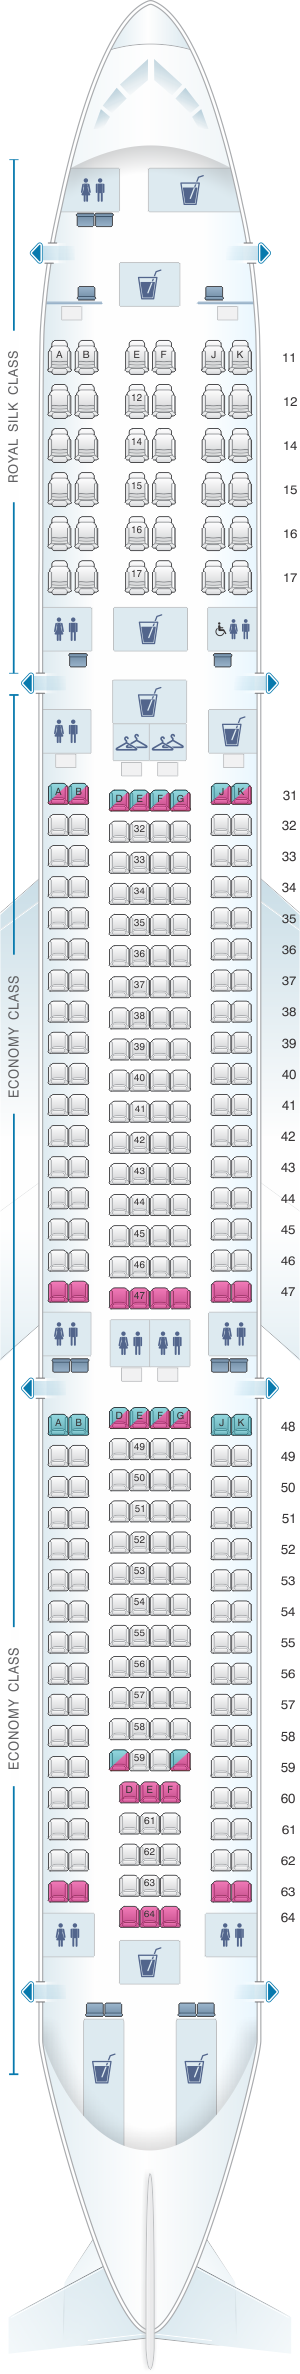 Seat map for Thai Airways International Airbus A330 300 (330/33H)